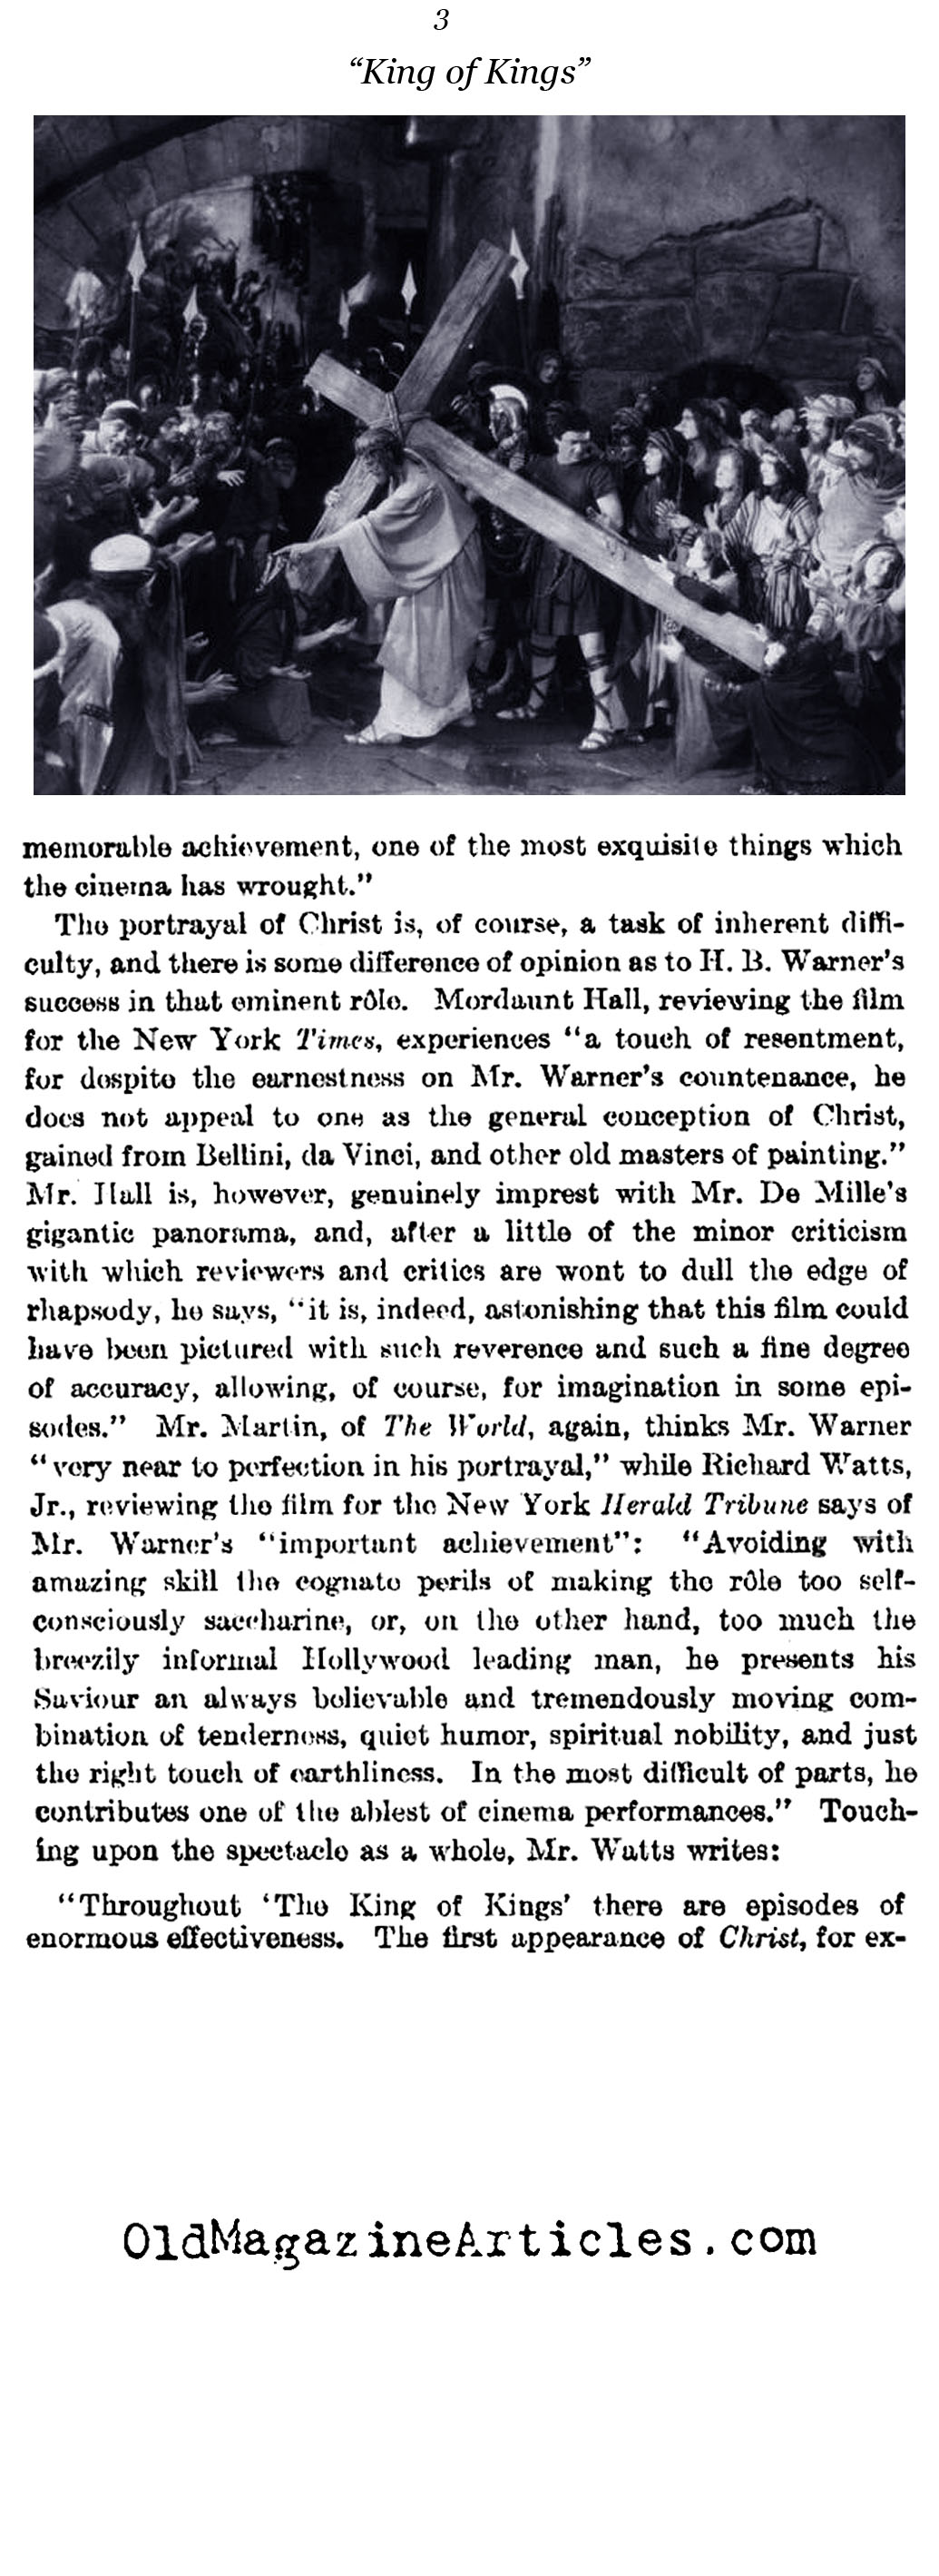 Christ is Big Box-Office (The Literary Digest, 1927)